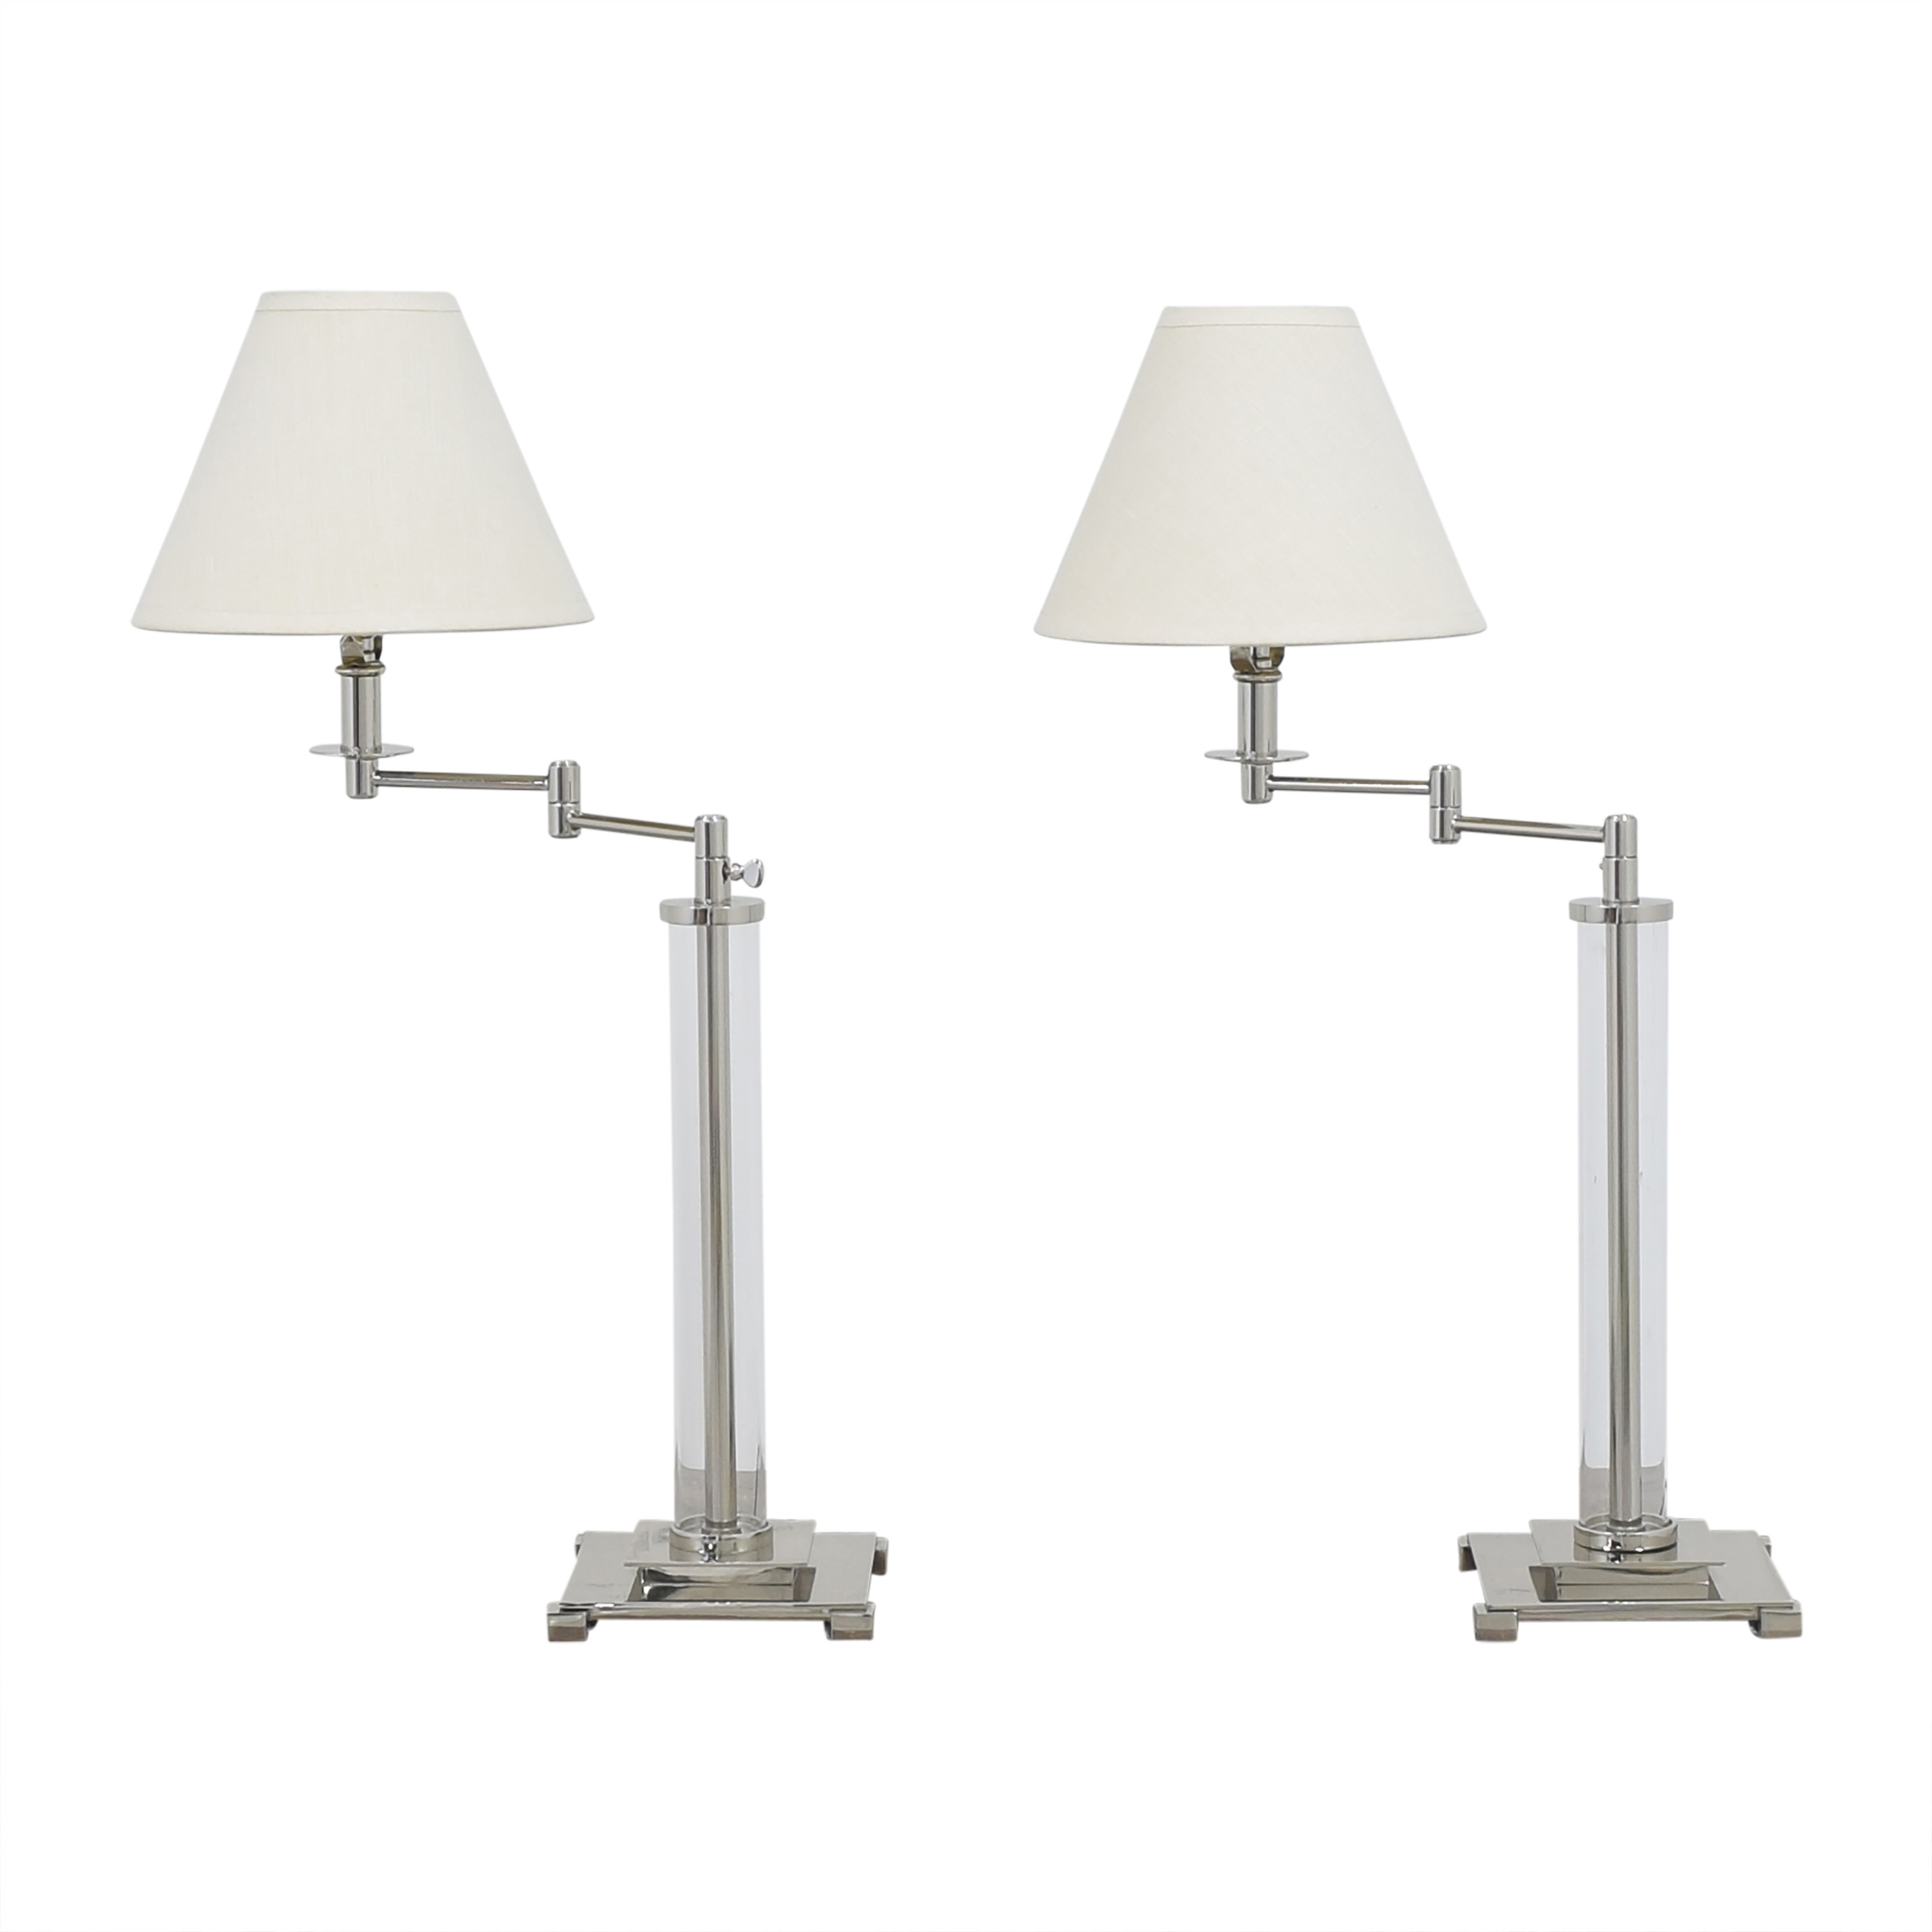 Restoration Hardware Restoration Hardware French Column Swing Arm Table Lamps coupon